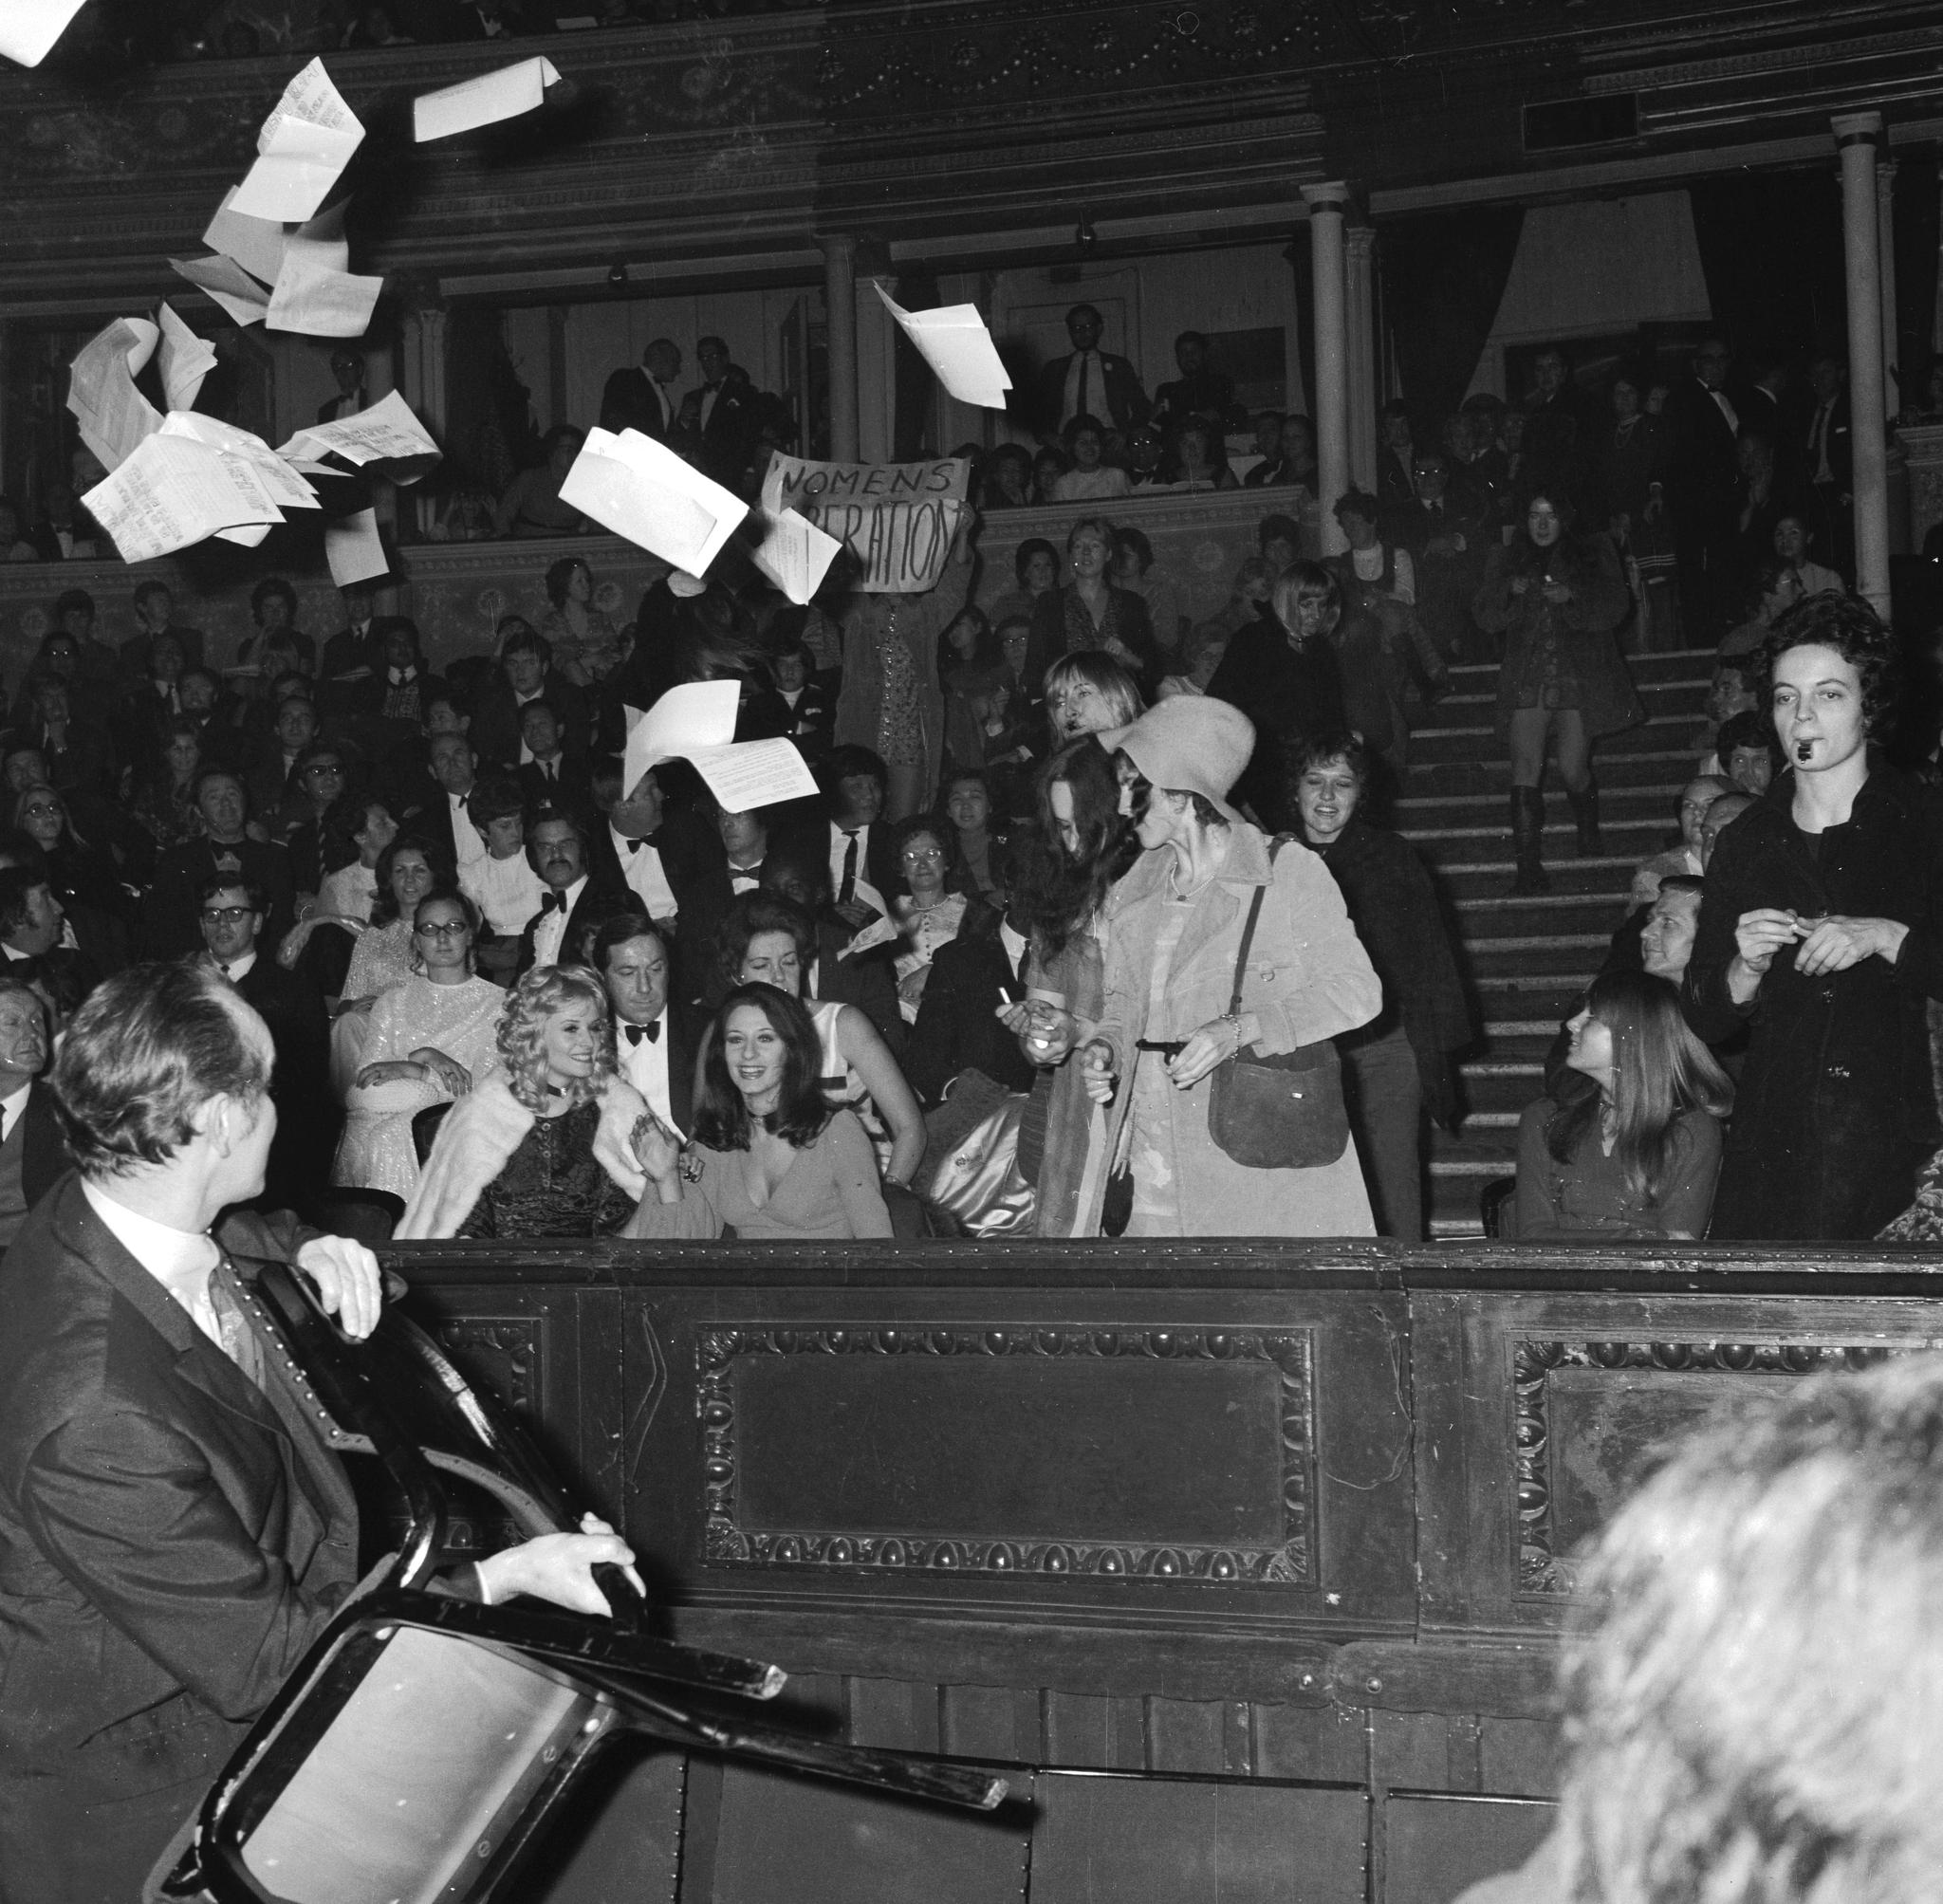 Demonstrators inside the Royal Albert Hall during the 1970 Miss World contest(Getty)